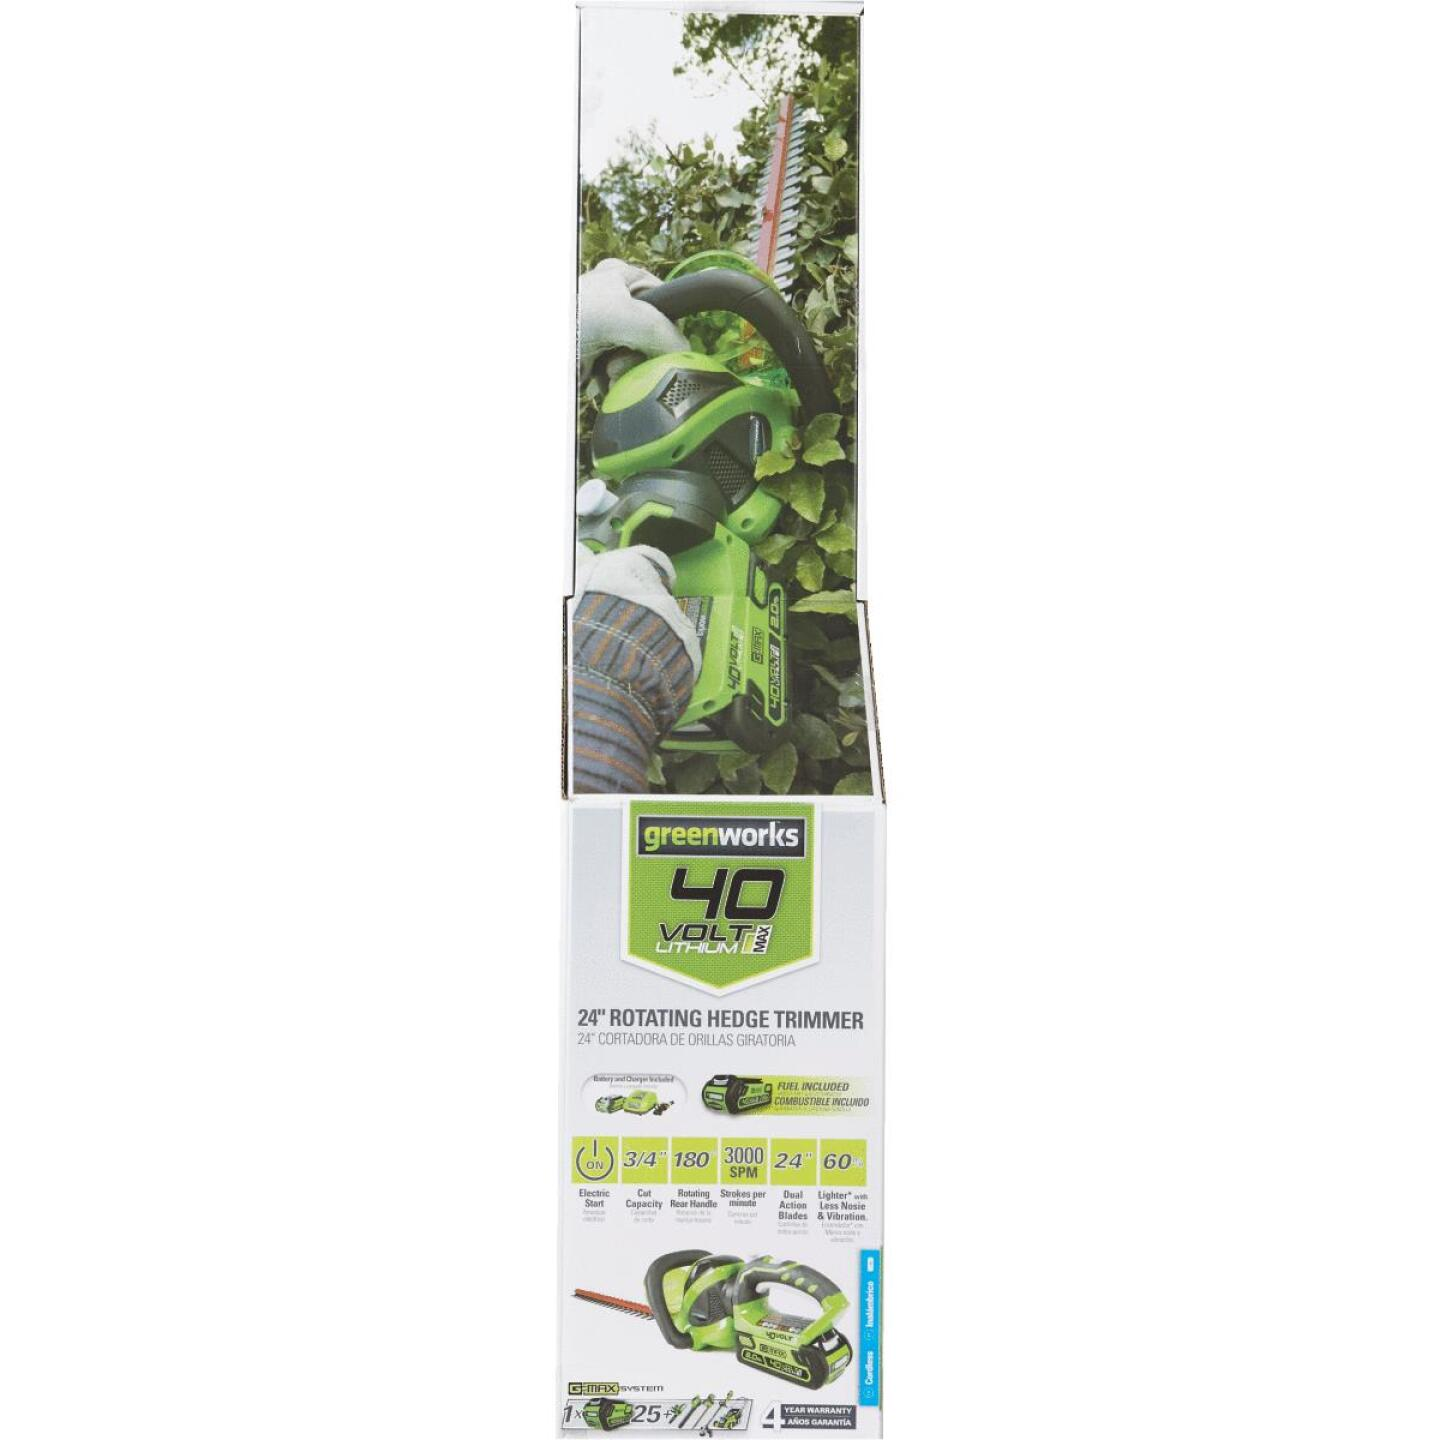 Greenworks G-Max 24 In. 40V Lithium Ion Cordless Hedge Trimmer (Bare Tool) Image 2